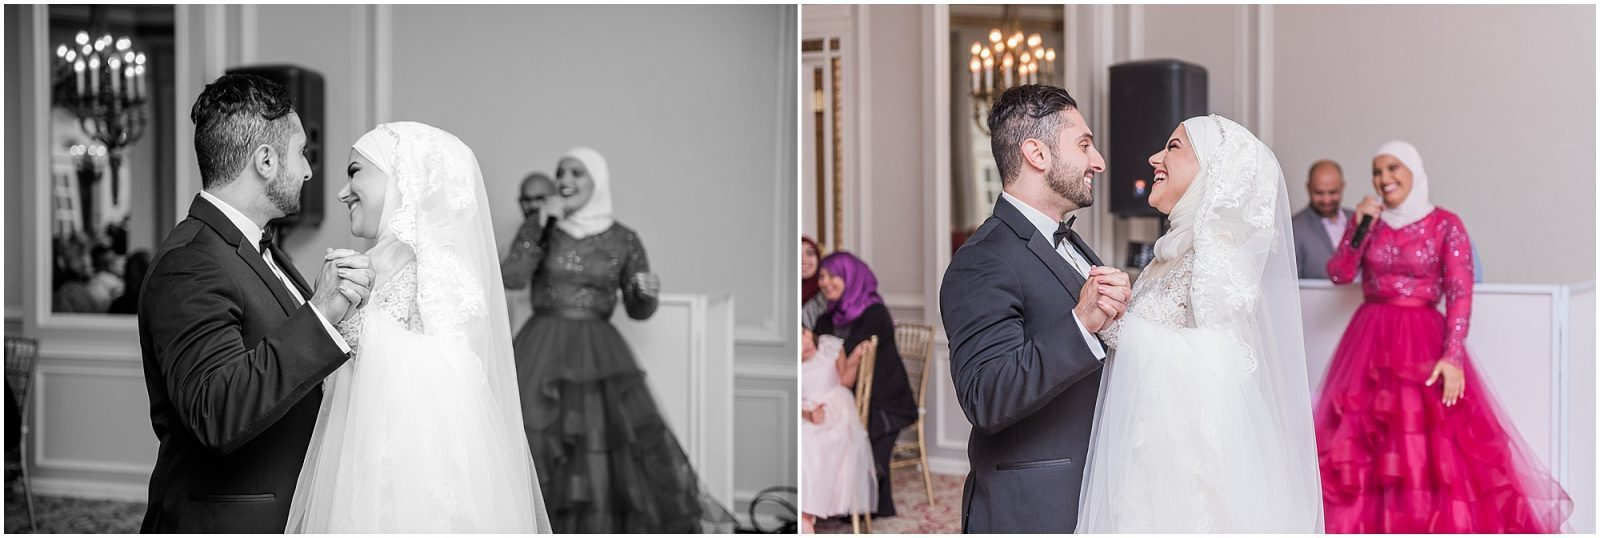 0095 Chateau Laurier Wedding - Hijabi Bride - Sireen & Anas- Ottawa_PhotosbyEmmaH.jpg